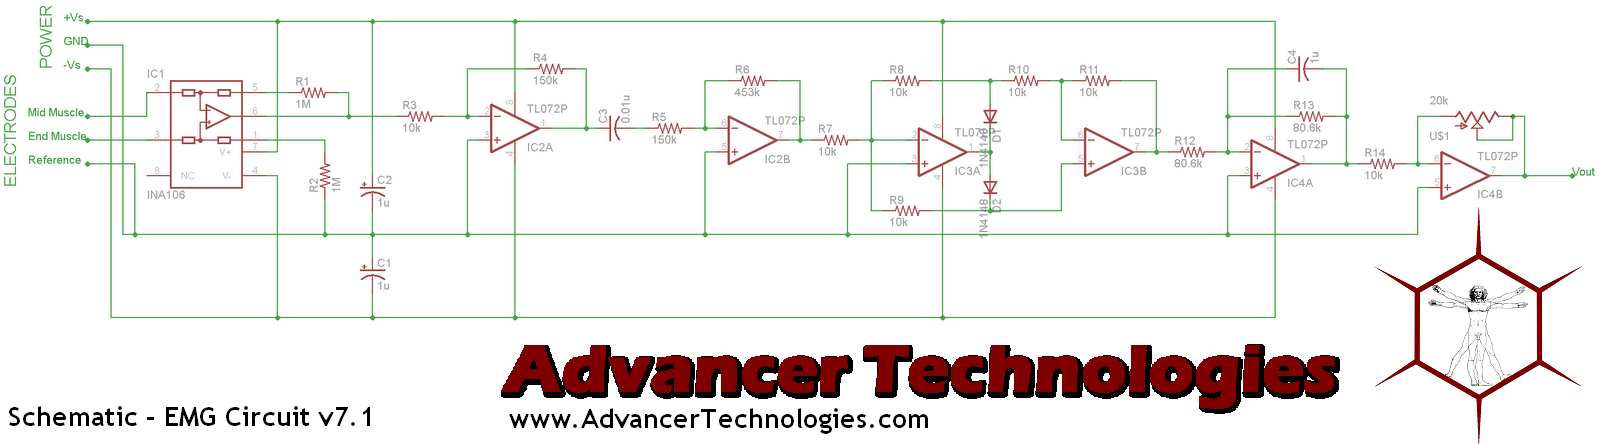 Final Year Project - Development of EMG Circuit for Controlling an ...